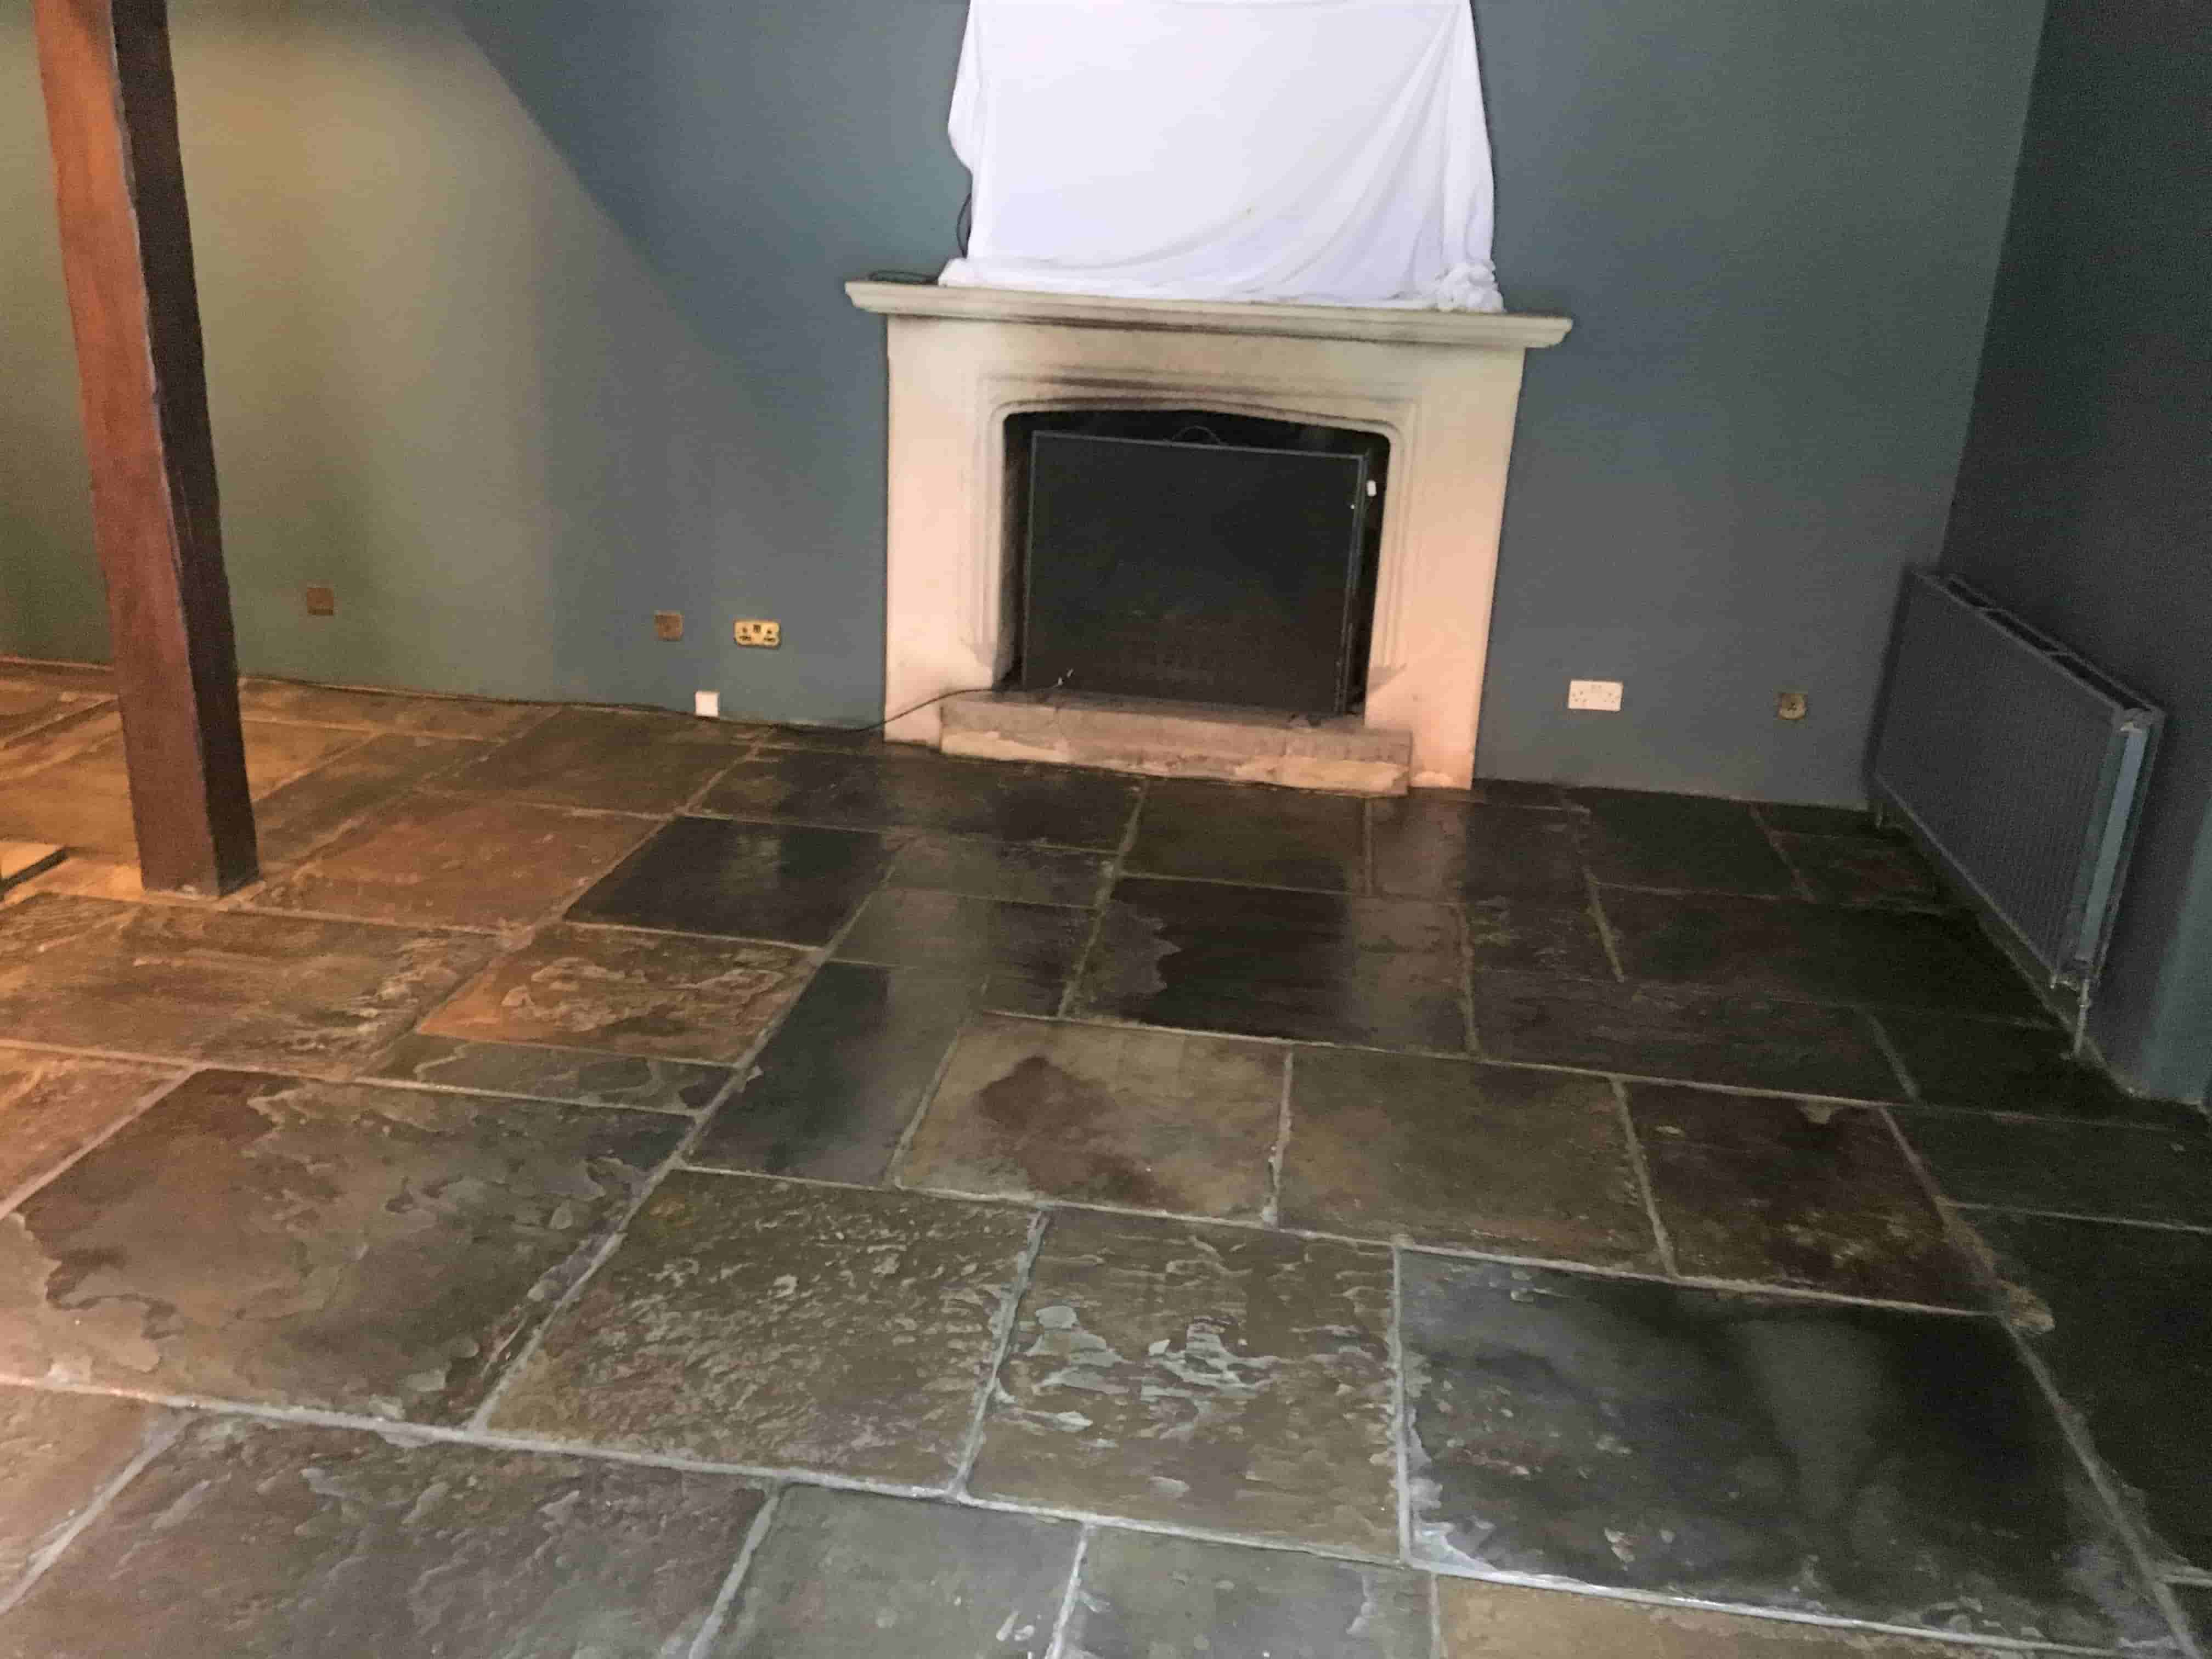 300 Year Old Sandstone Flagstone Floor After Sealing Pirbright_Mill